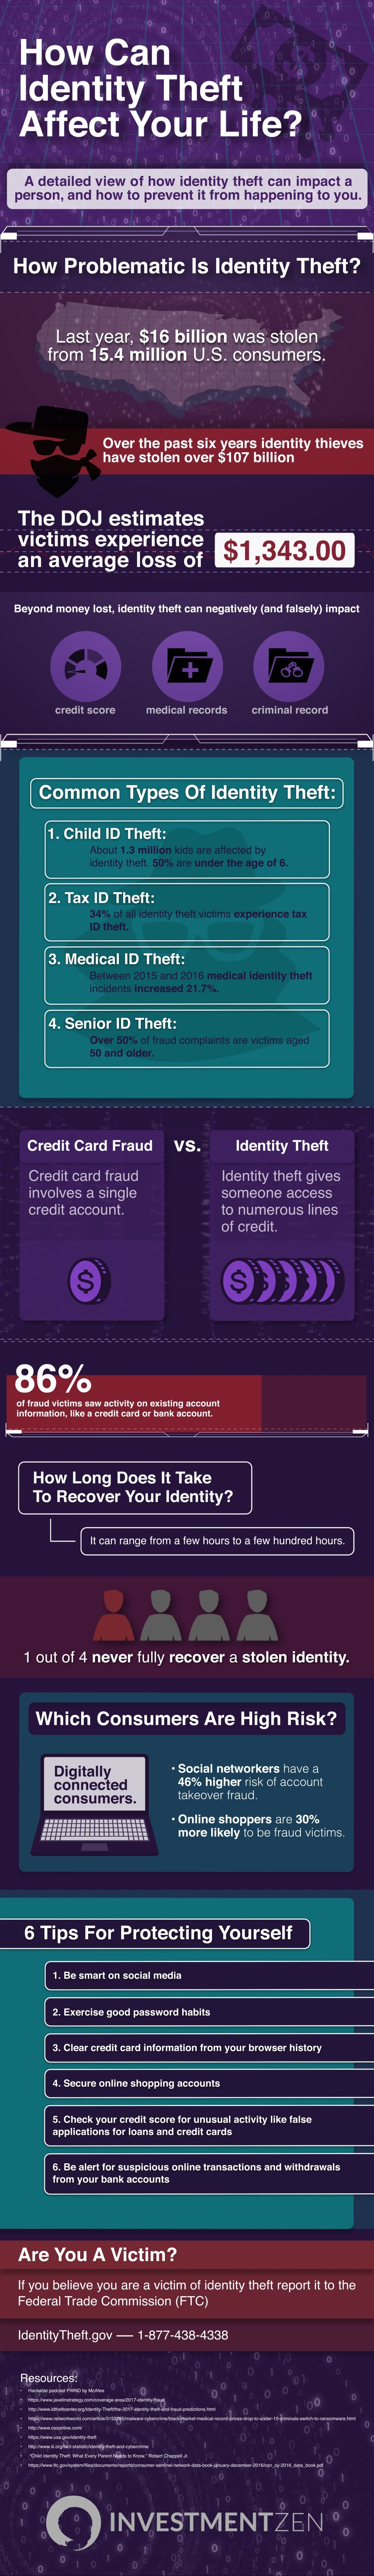 How Can Identity Theft Affect Your Life? - #infographic